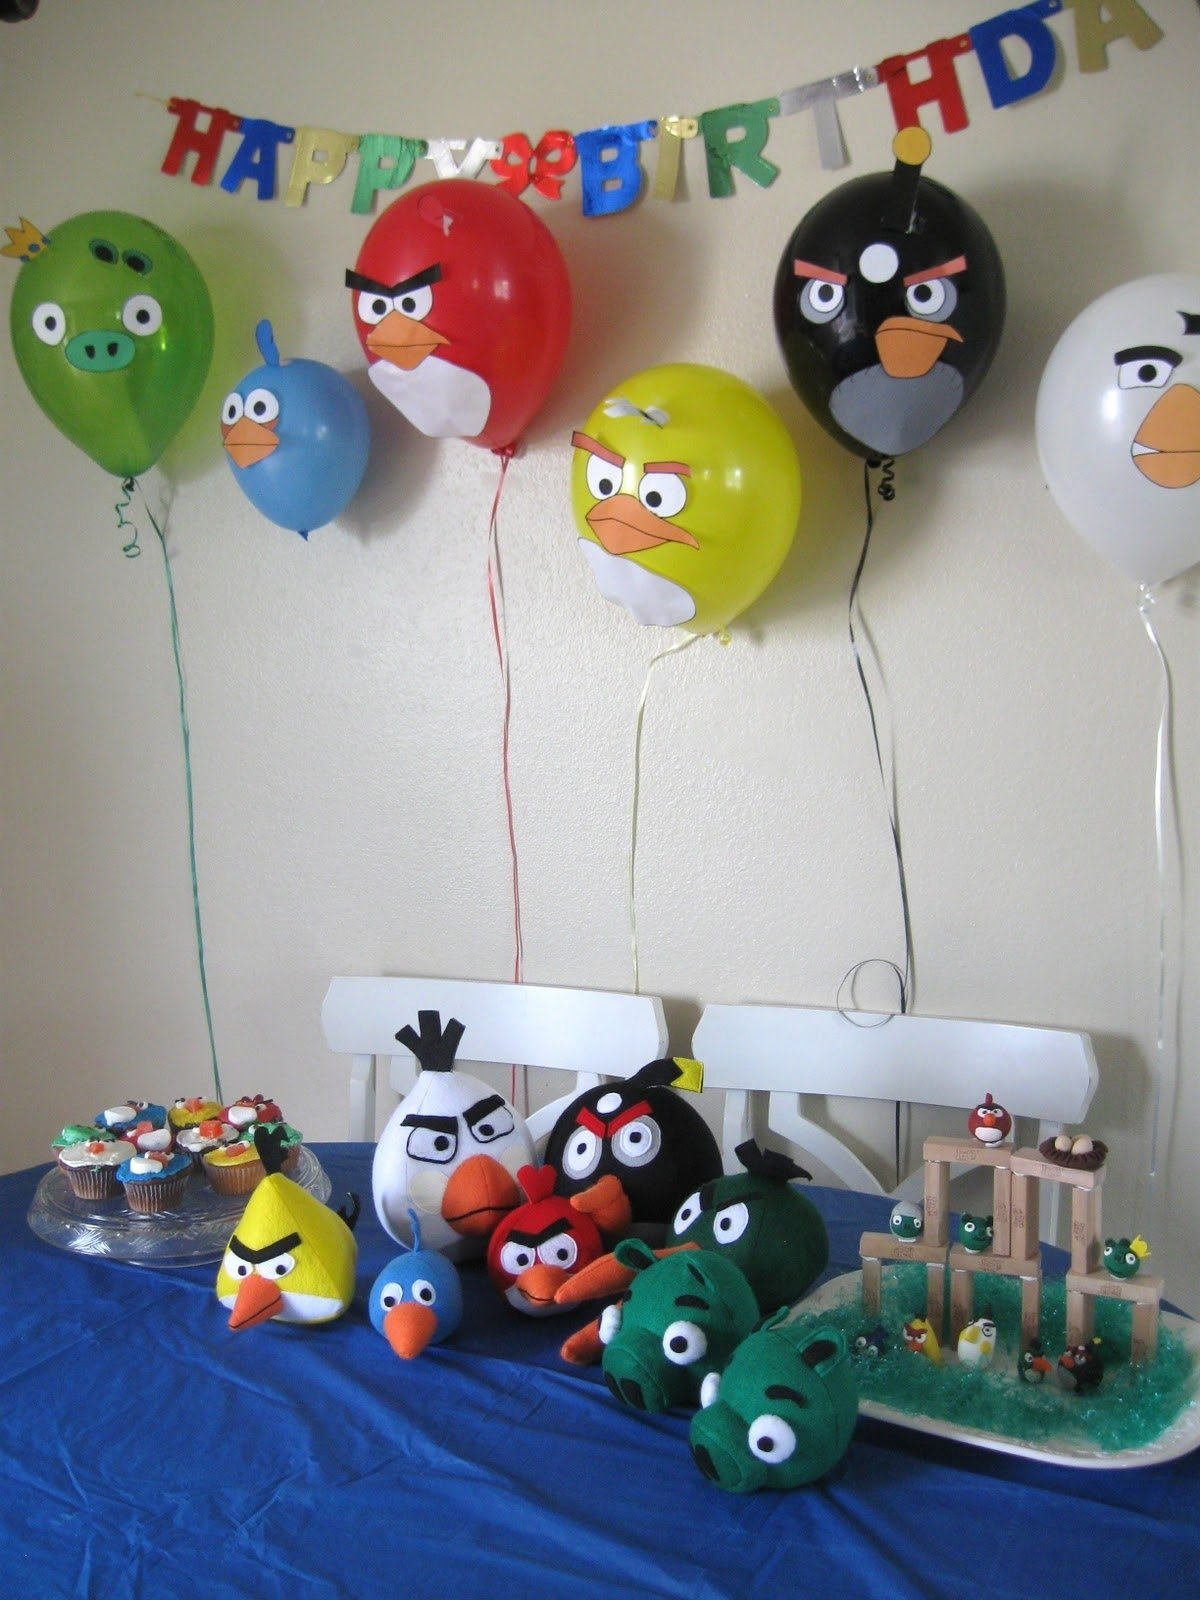 10 Most Recommended Birthday Party Ideas For 2 Year Old Boy Angry Birds Balloons Jacks Next